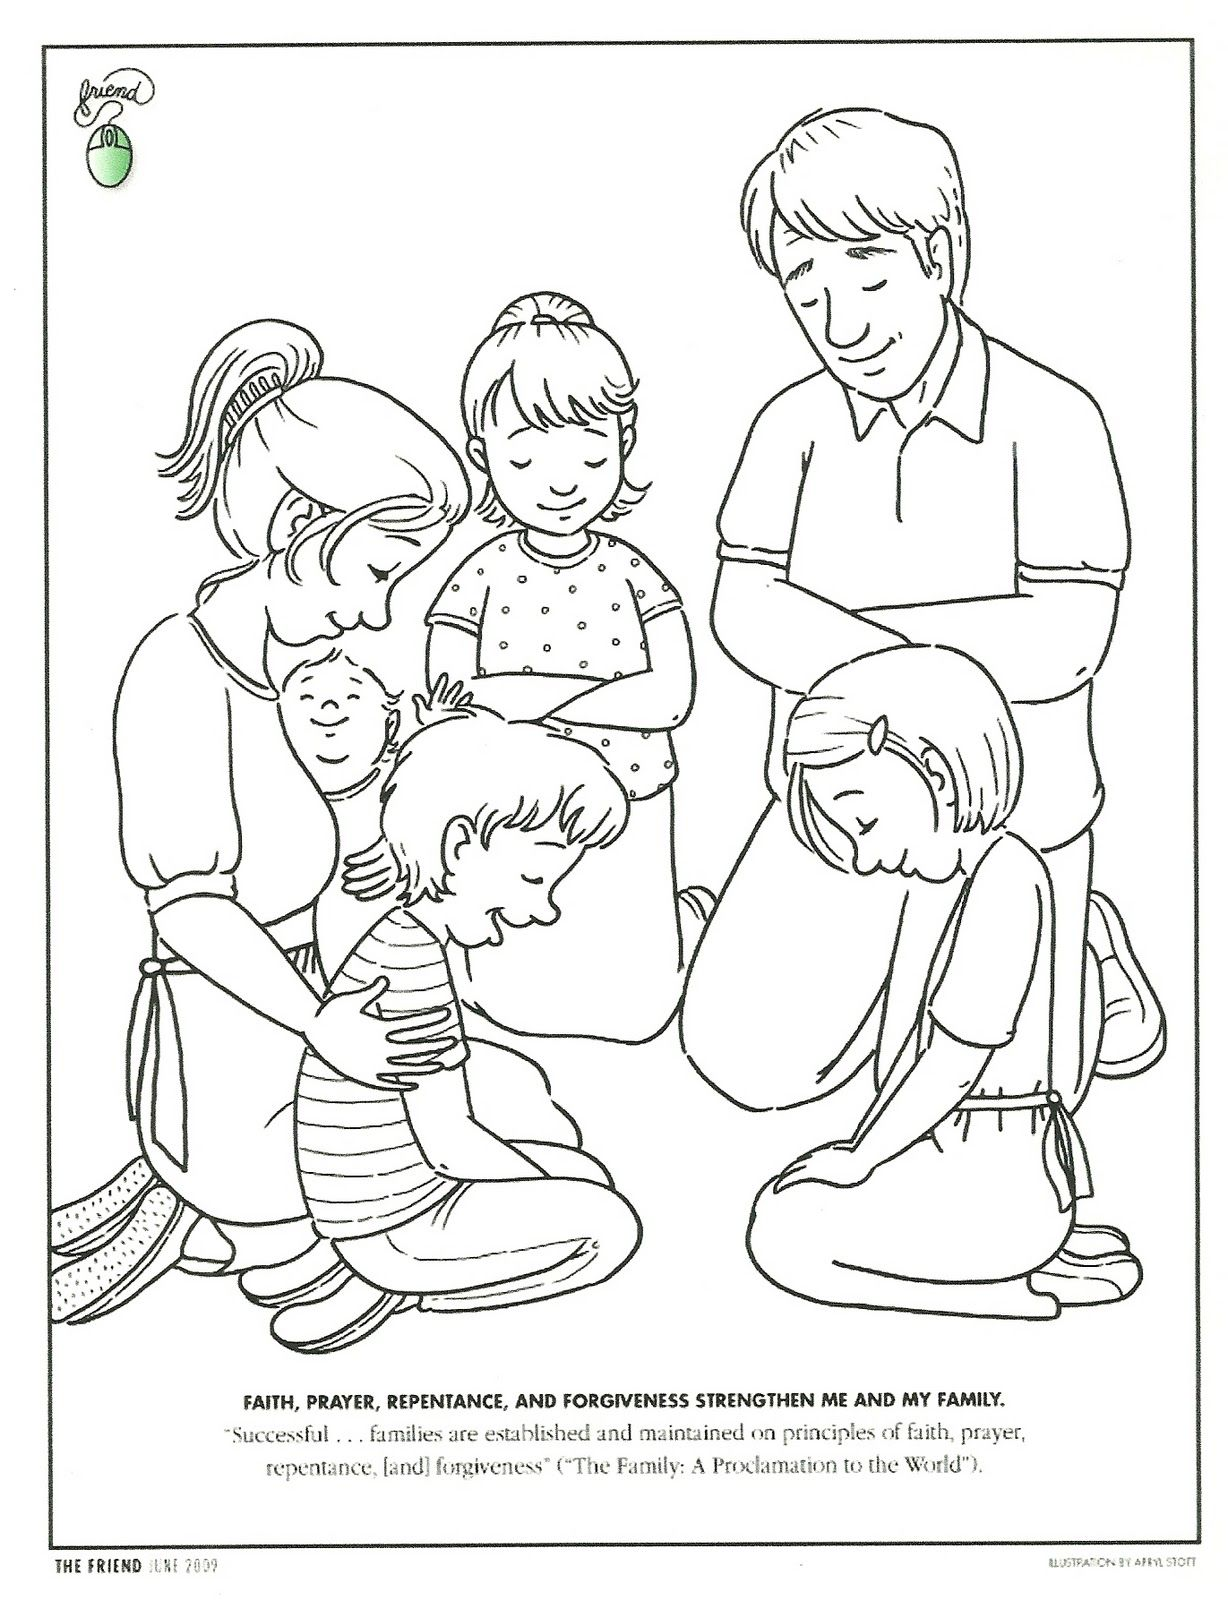 Primary 3 Lesson 41 Sunday School Coloring Pages Lds Coloring